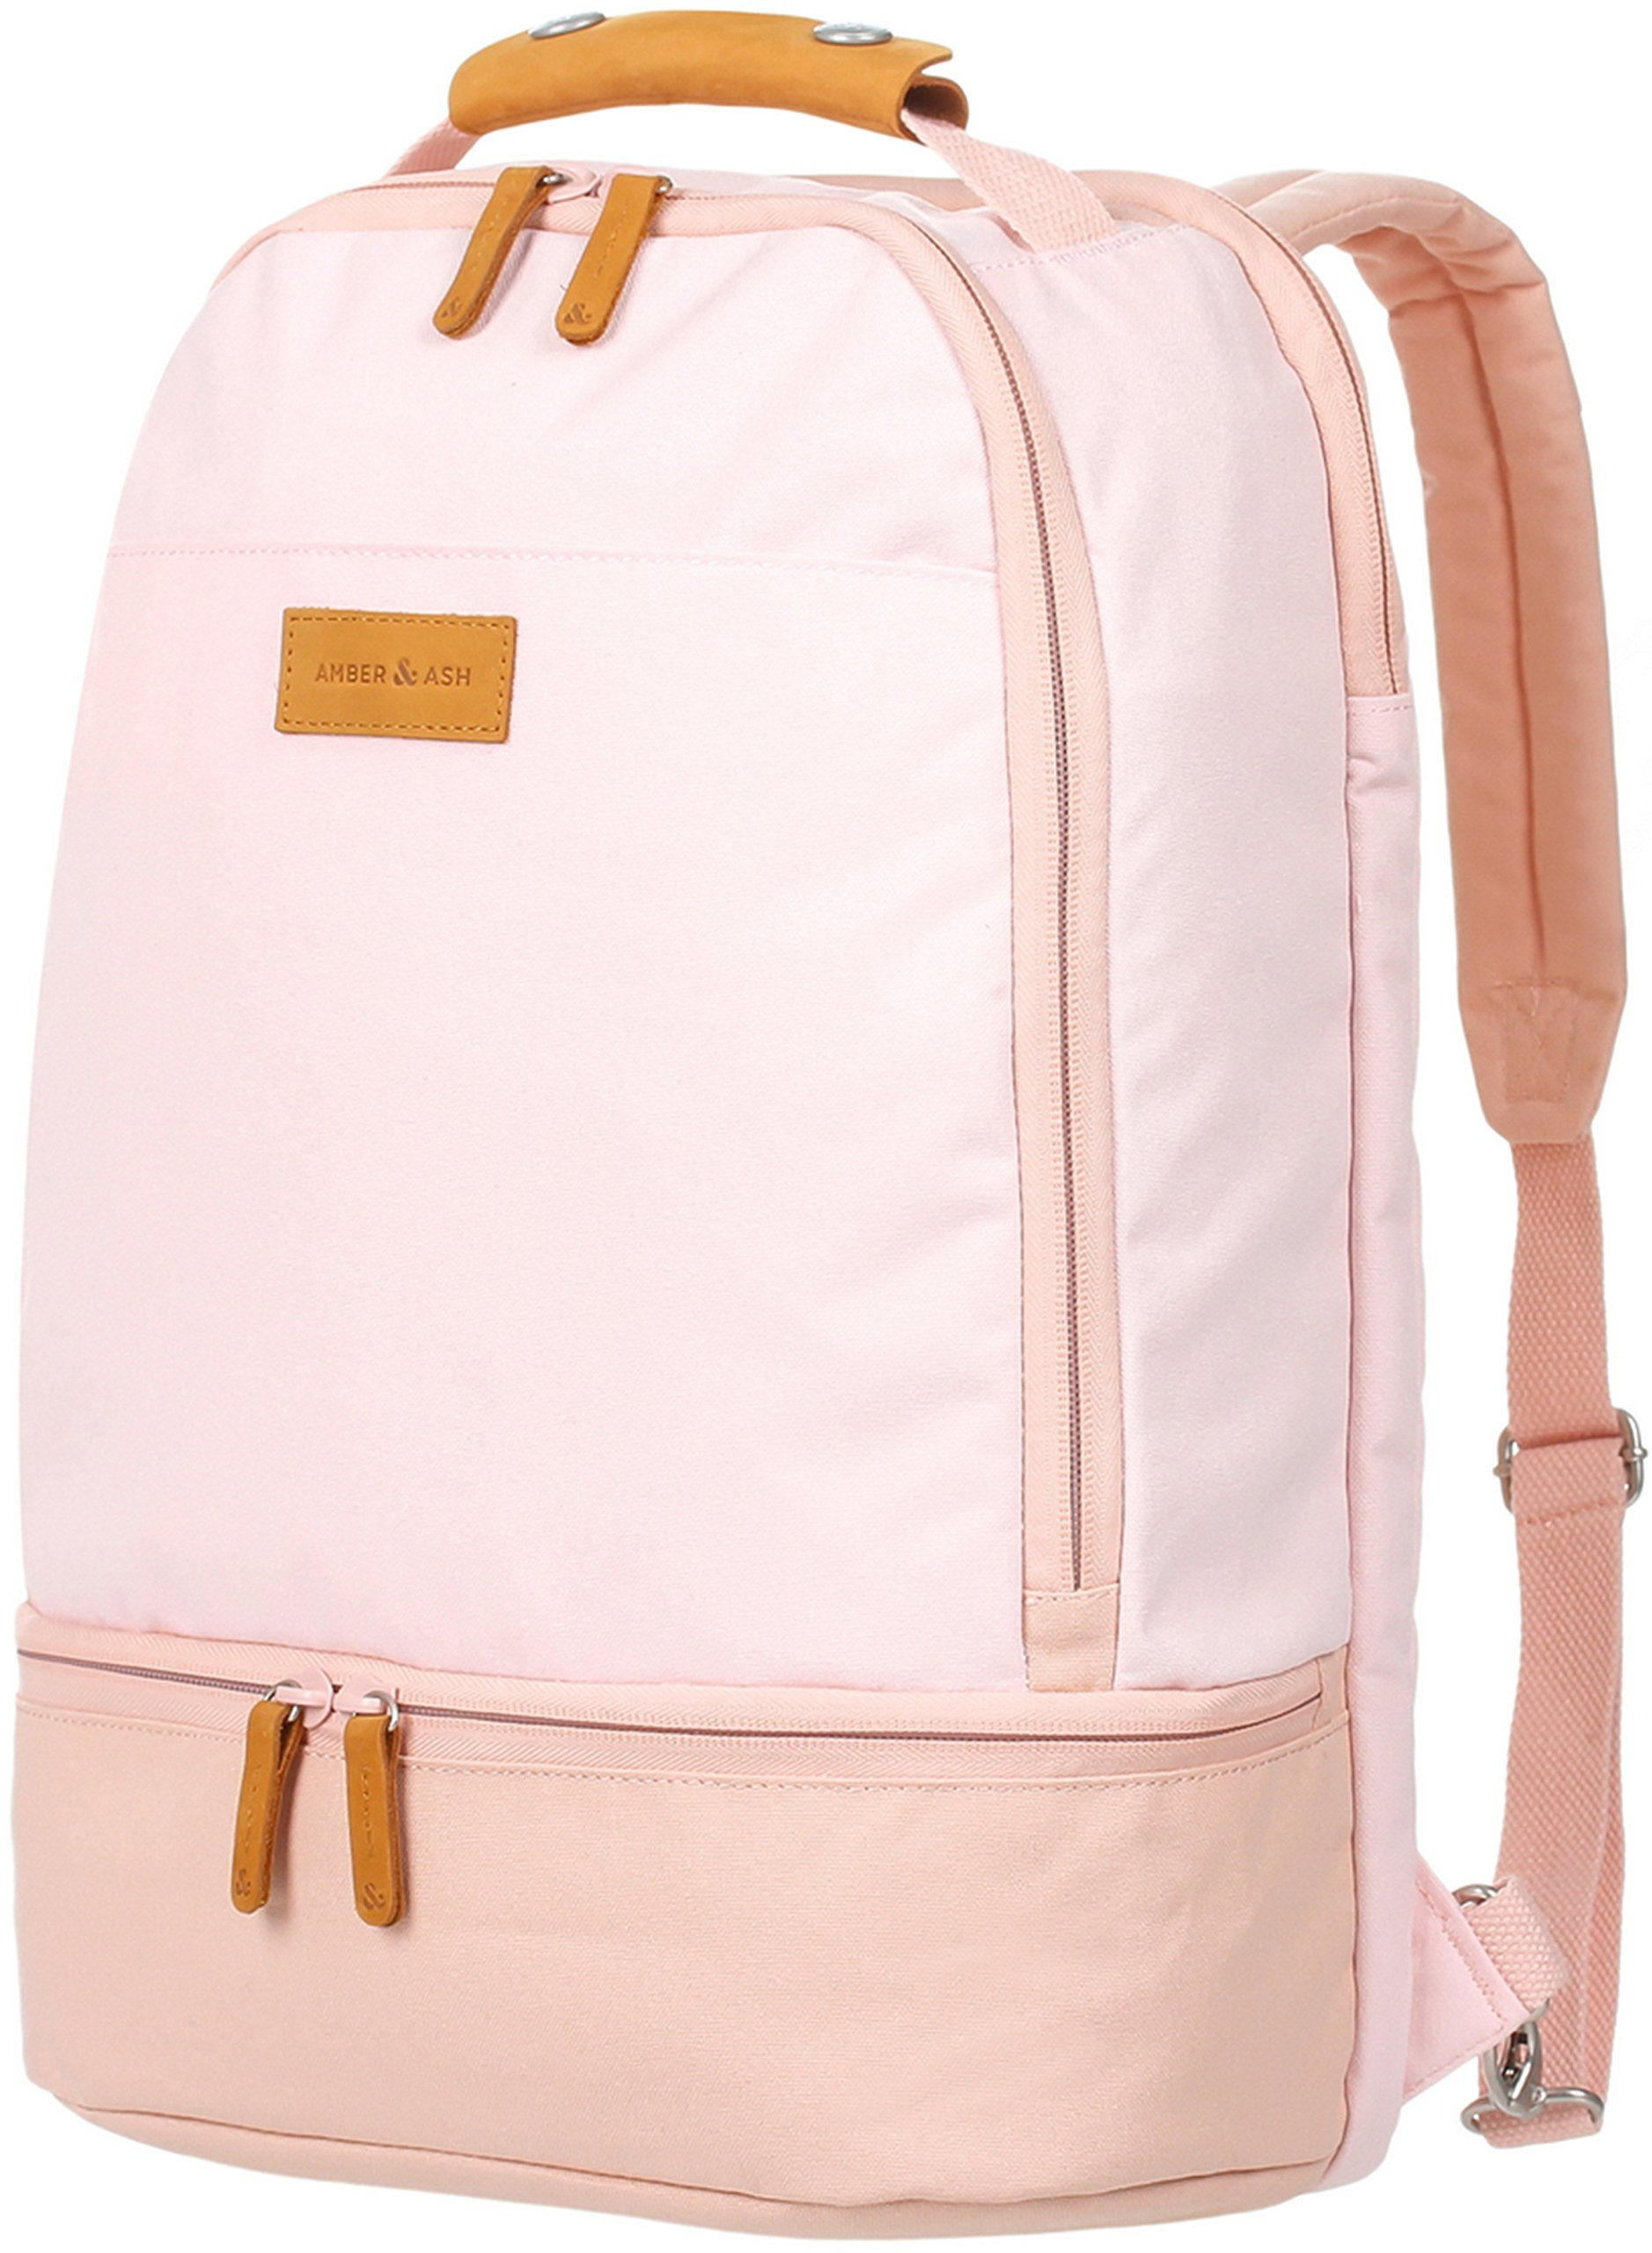 2824a54b785d Everyday Laptop Backpack AMBER   ASH Business Anti Theft Slim Durable  Backpack